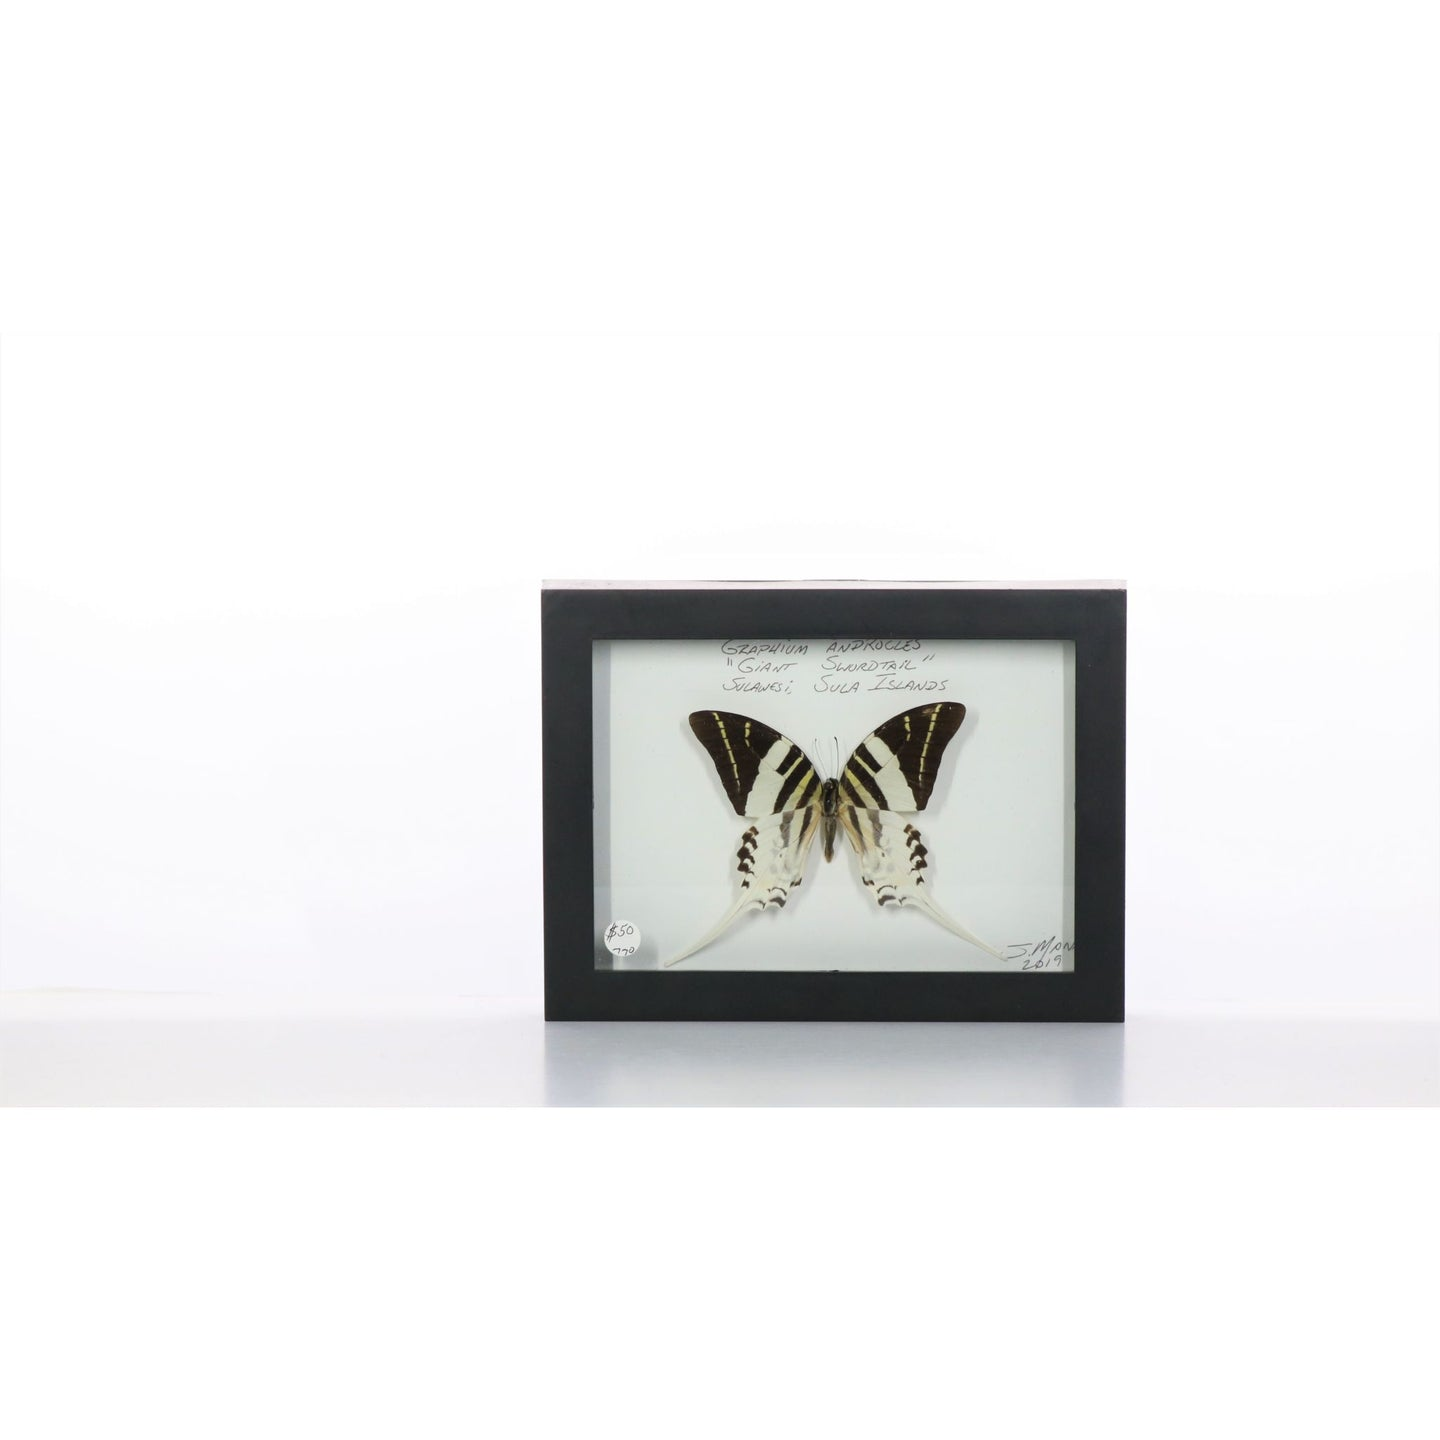 Giant Swordtail 5x7 Black #770 Framed Art - Insecta Etcetera